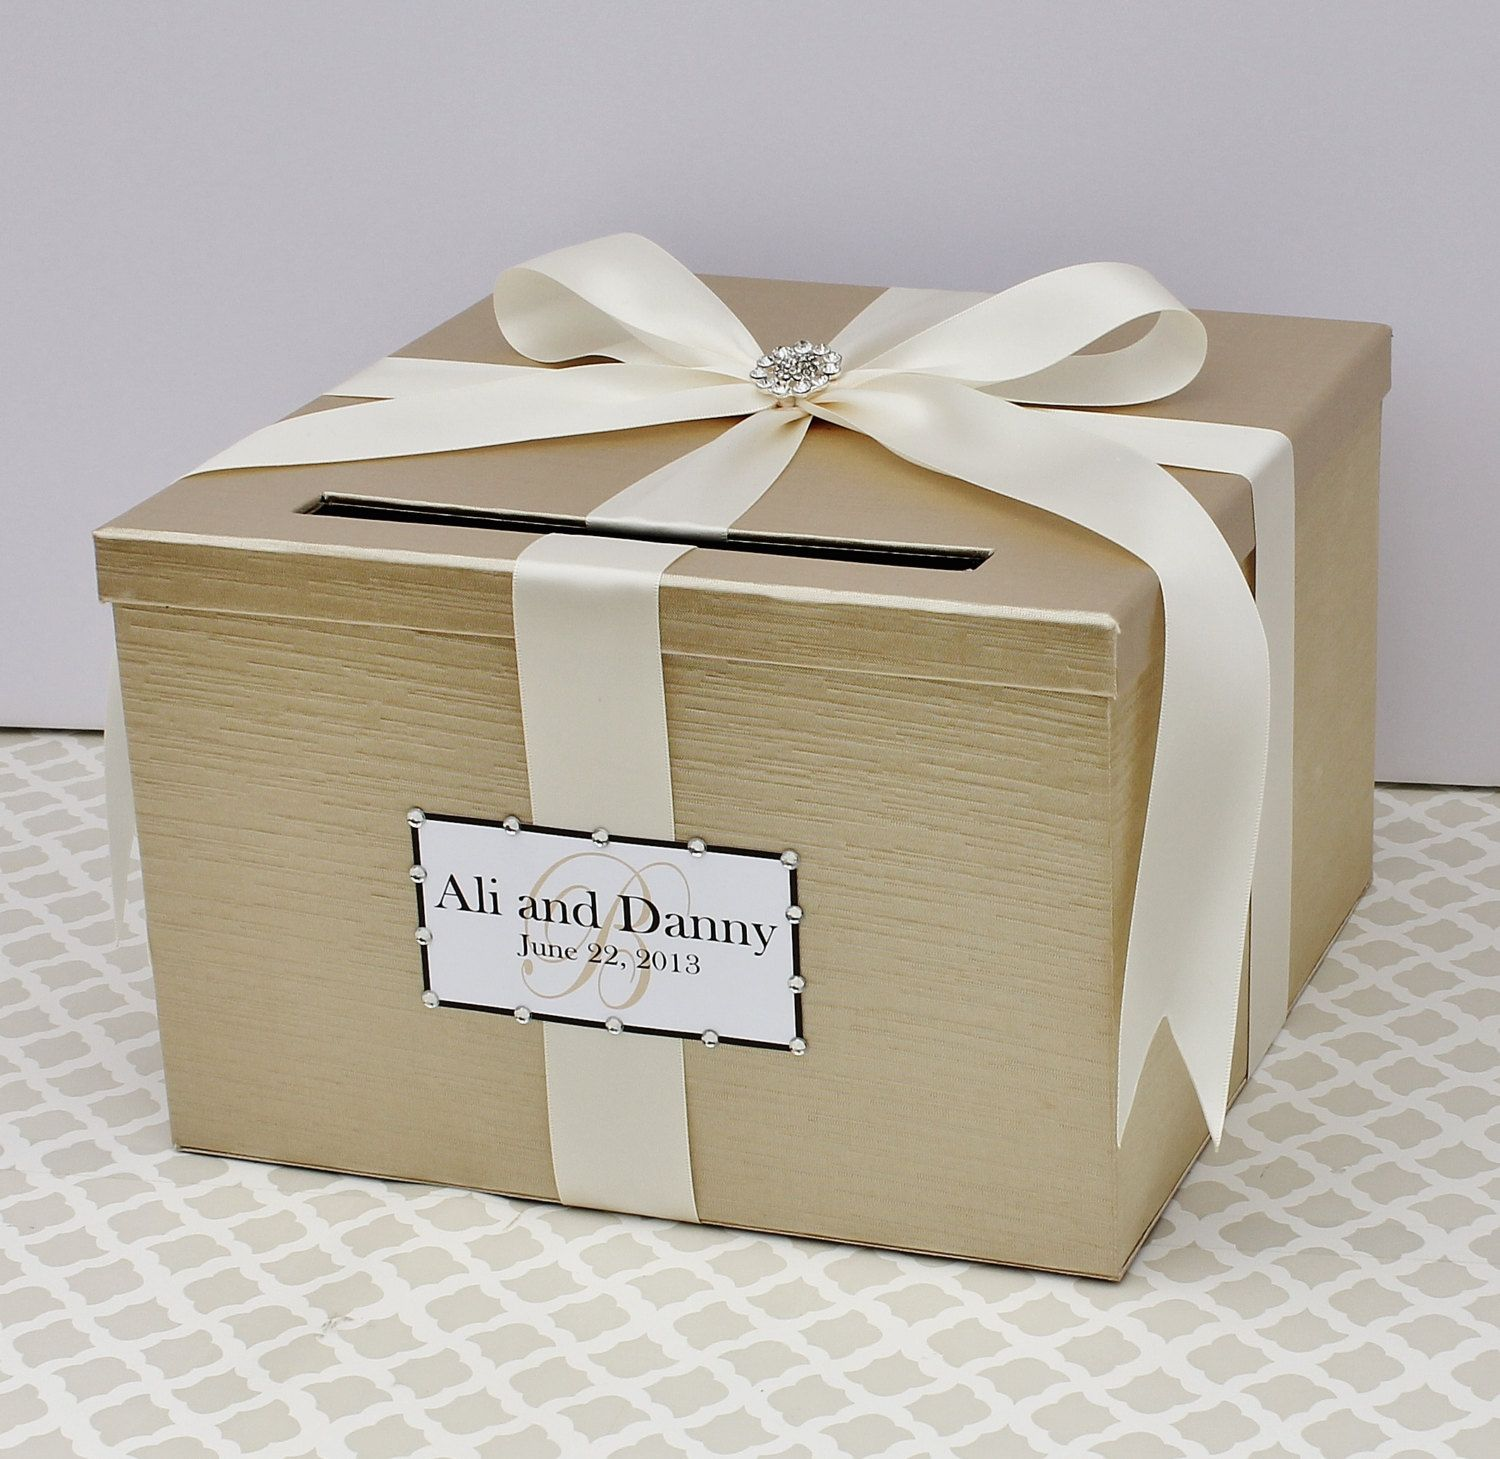 Card Boxes Wedding Gift Idea: Wedding Card Box Champagne Cream Flower Card Holder Custom